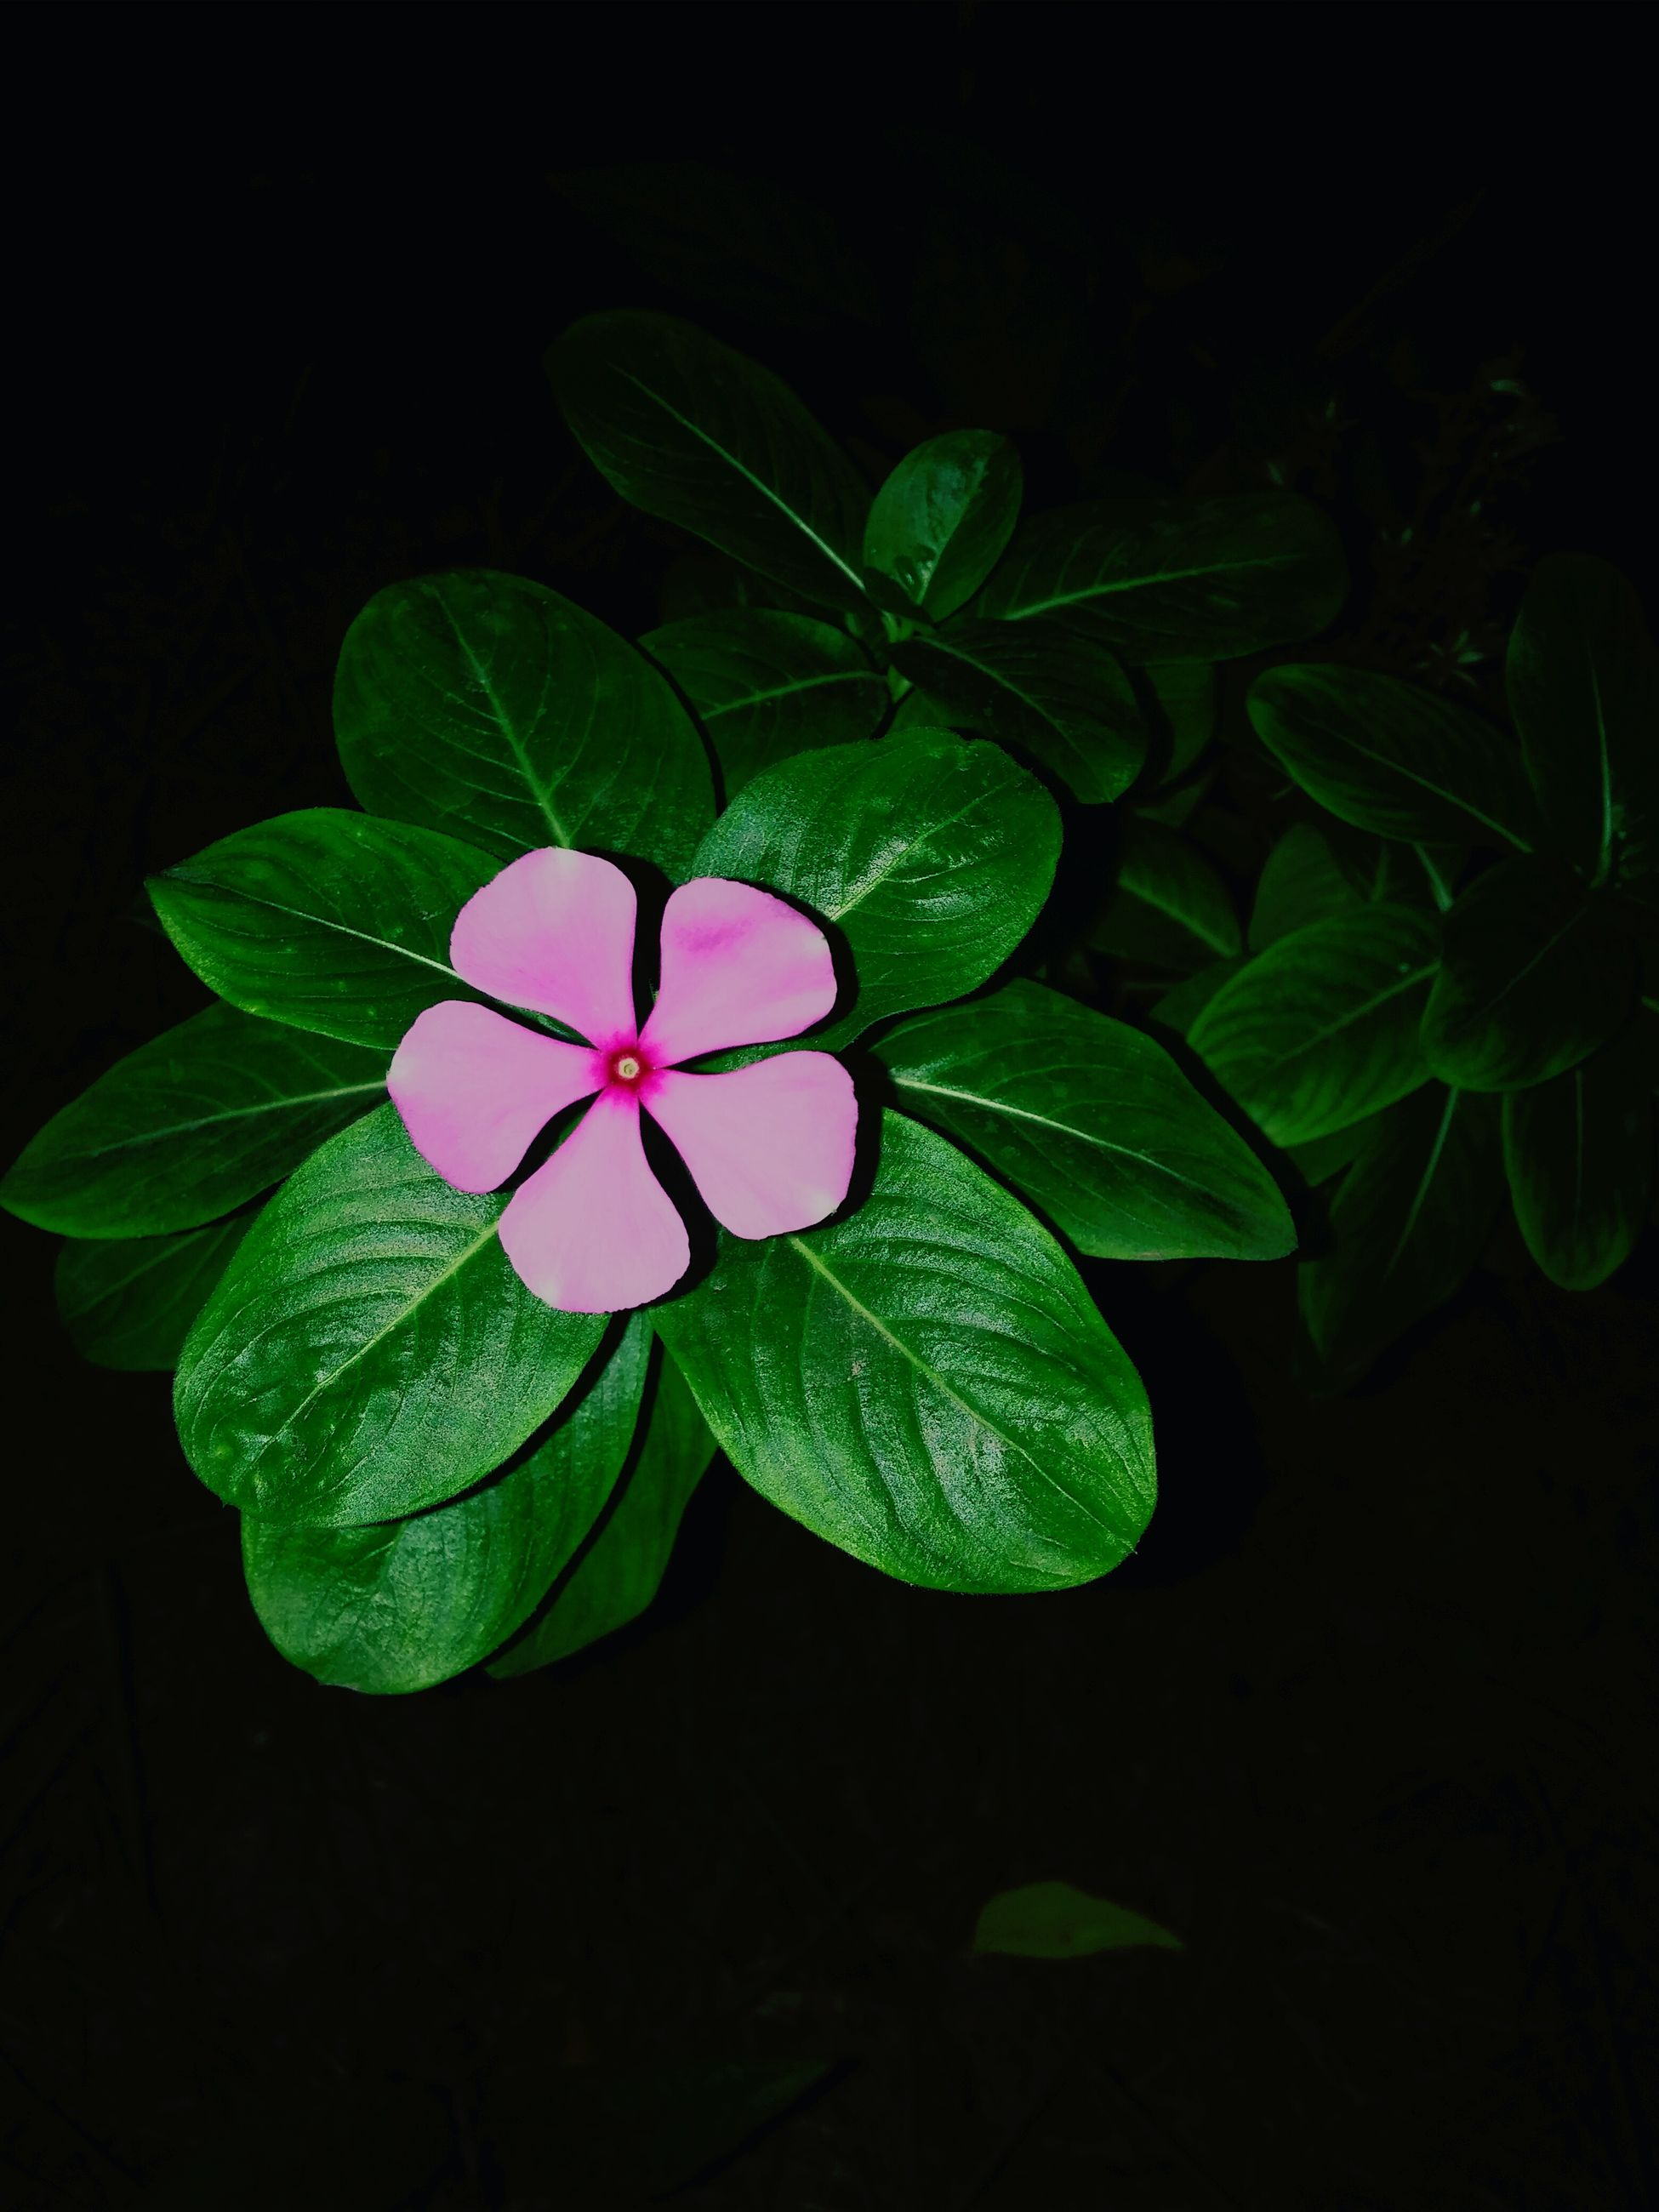 leaf, green color, nature, growth, plant, freshness, beauty in nature, periwinkle, fragility, no people, flower head, close-up, flower, black background, outdoors, day